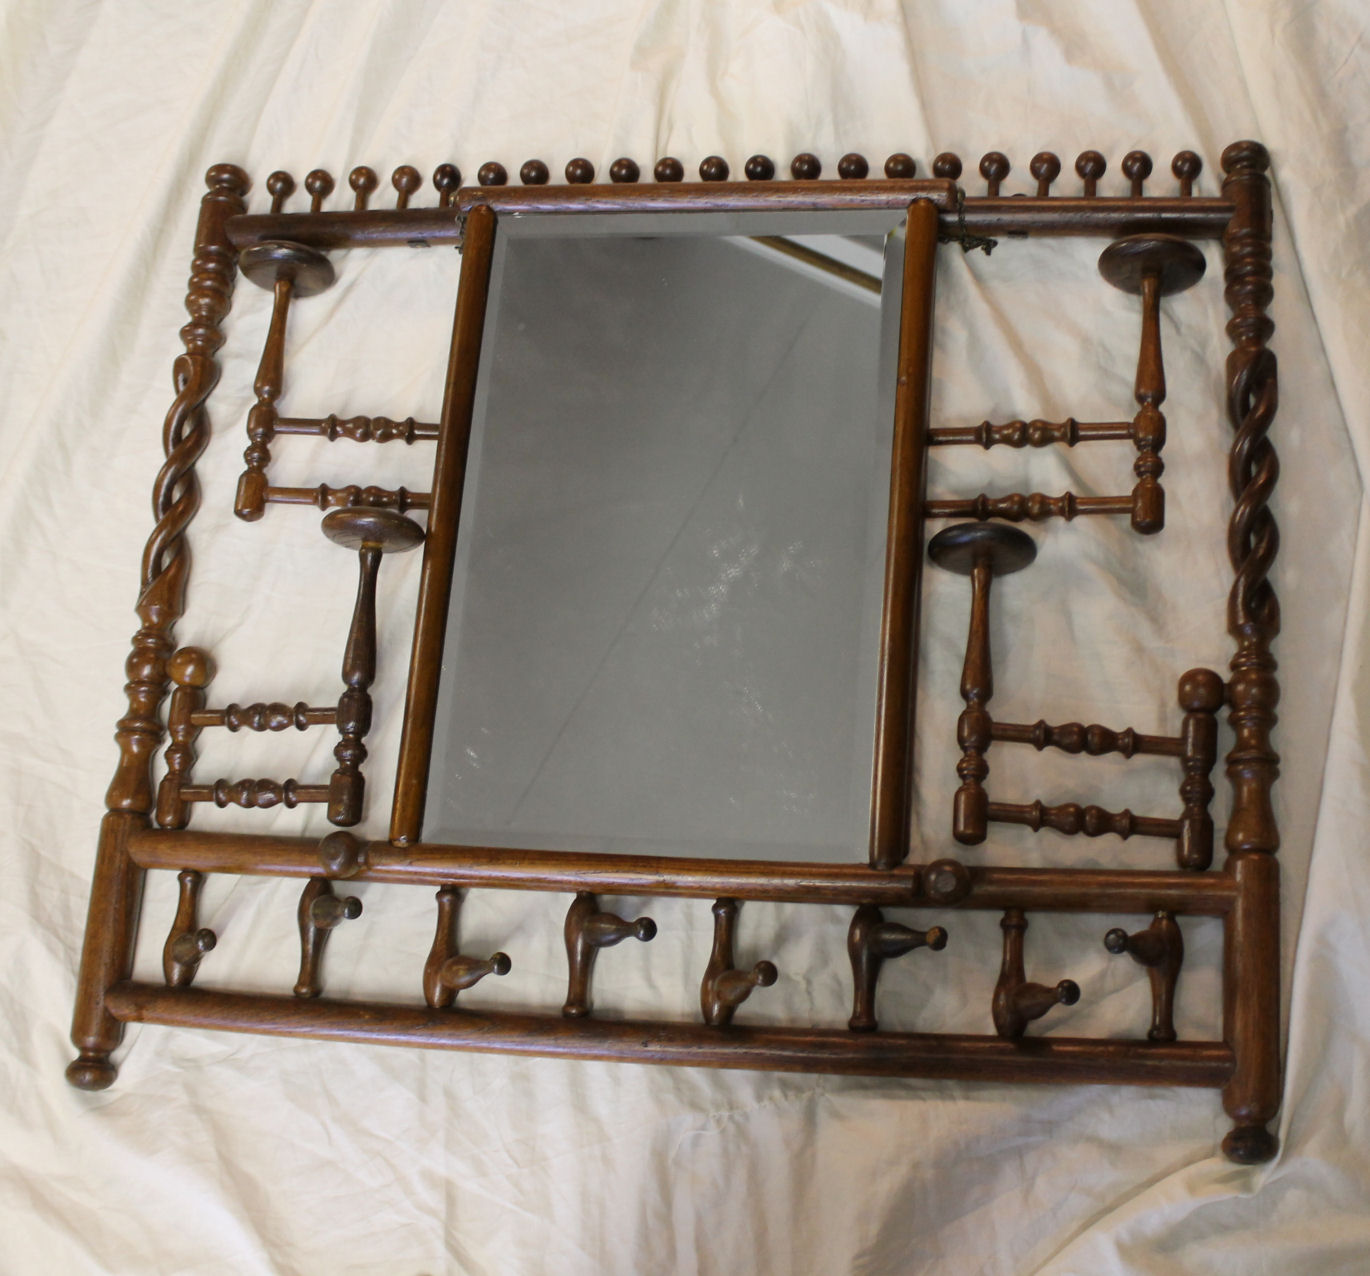 Bargain John S Antiques 187 Blog Archive Stick And Ball Wall